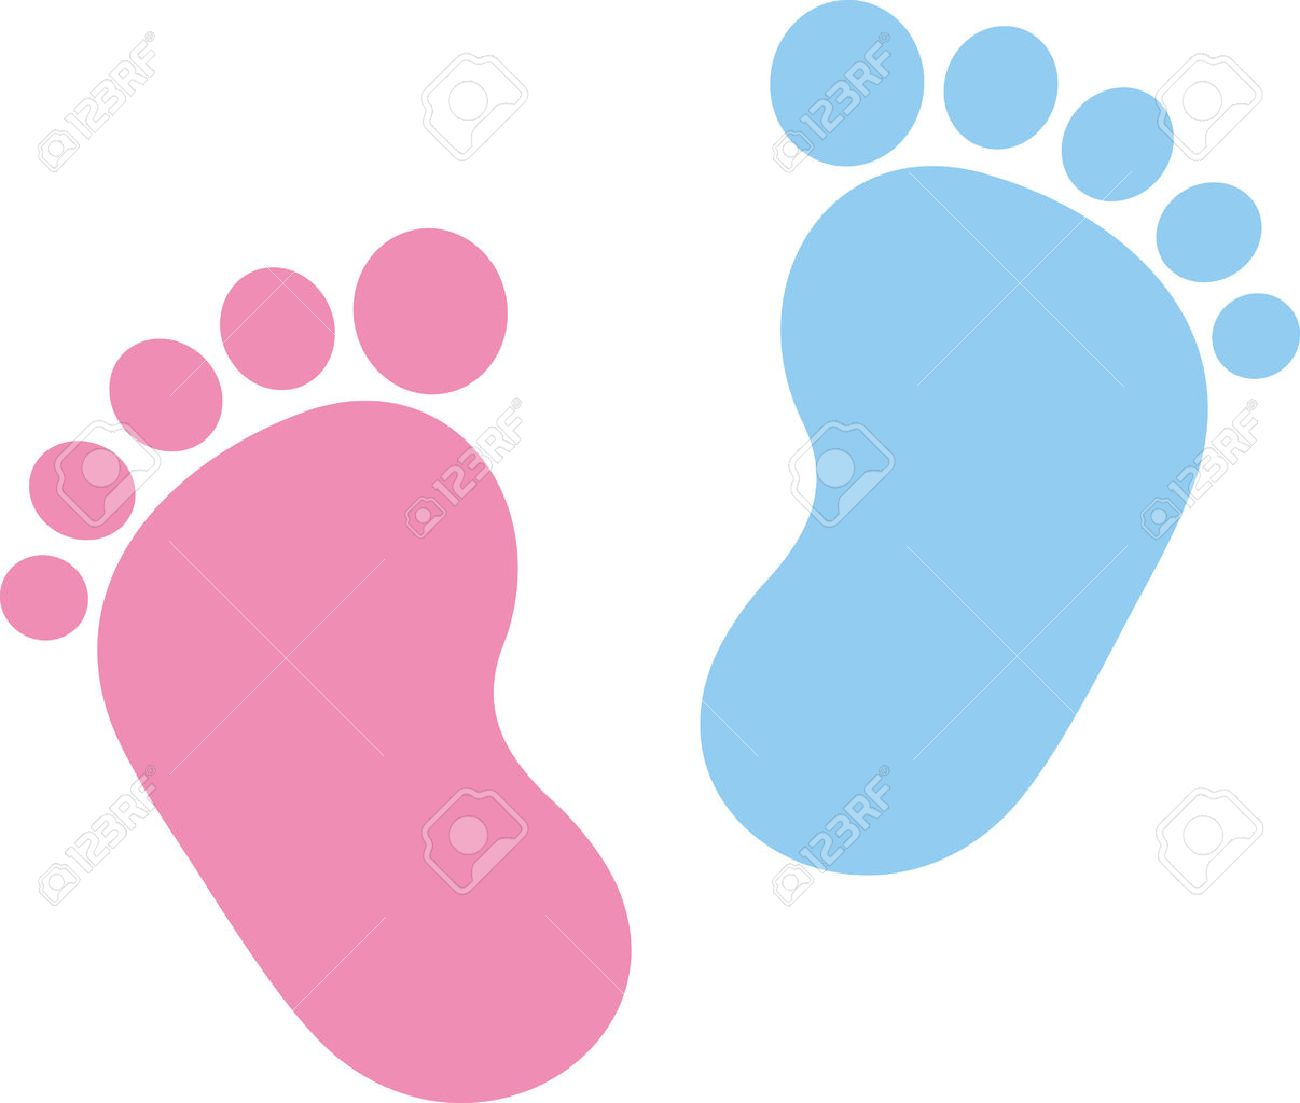 Baby footprint pink and blue - 50616215